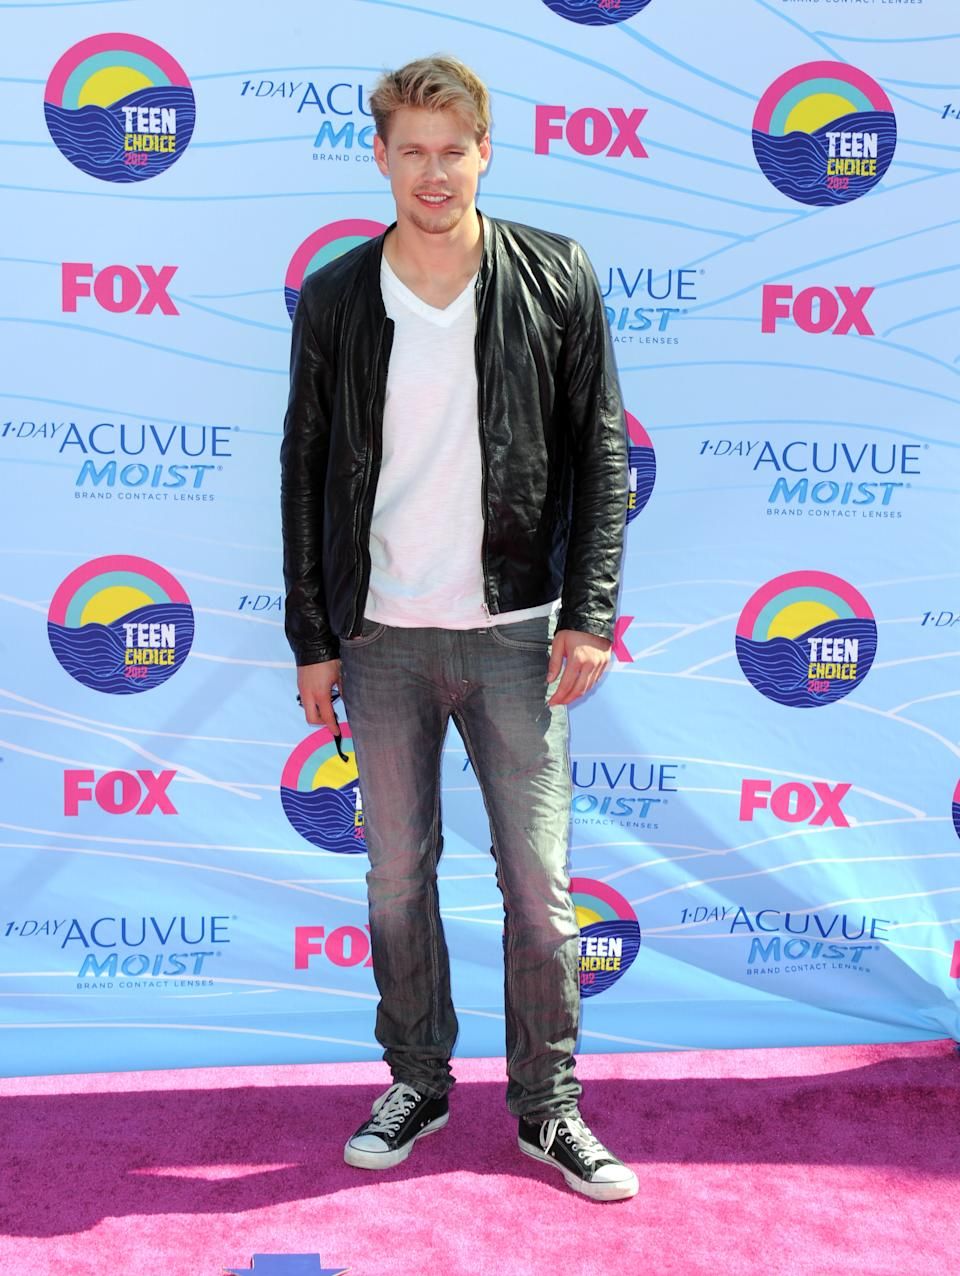 Chord Overstreet arrives at the Teen Choice Awards on Sunday, July 22, 2012, in Universal City, Calif. (Photo by Jordan Strauss/Invision/AP)